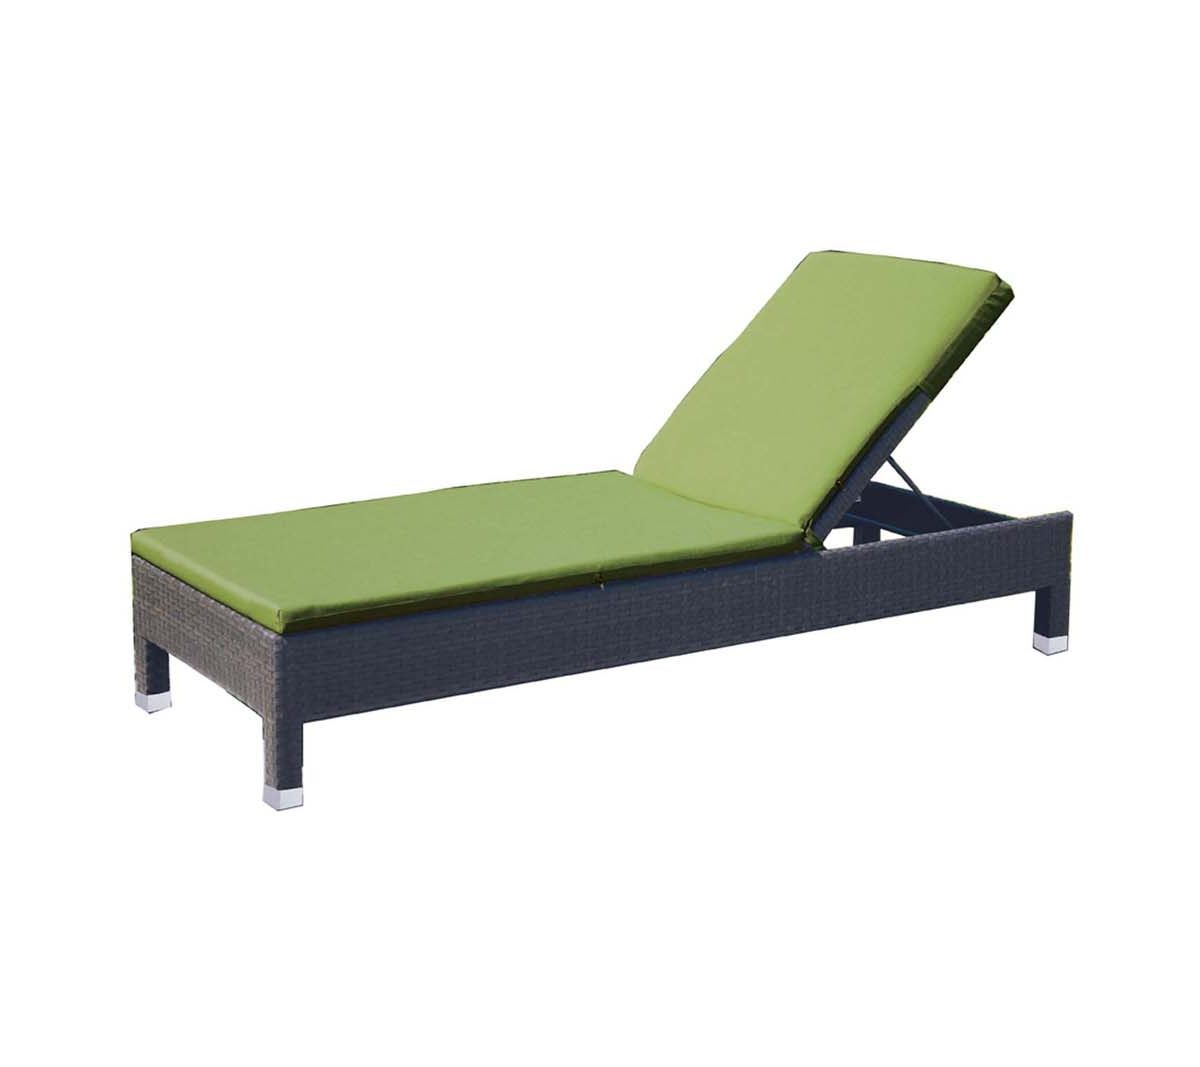 Brisbane Adjustable Lounger | Patio Bay